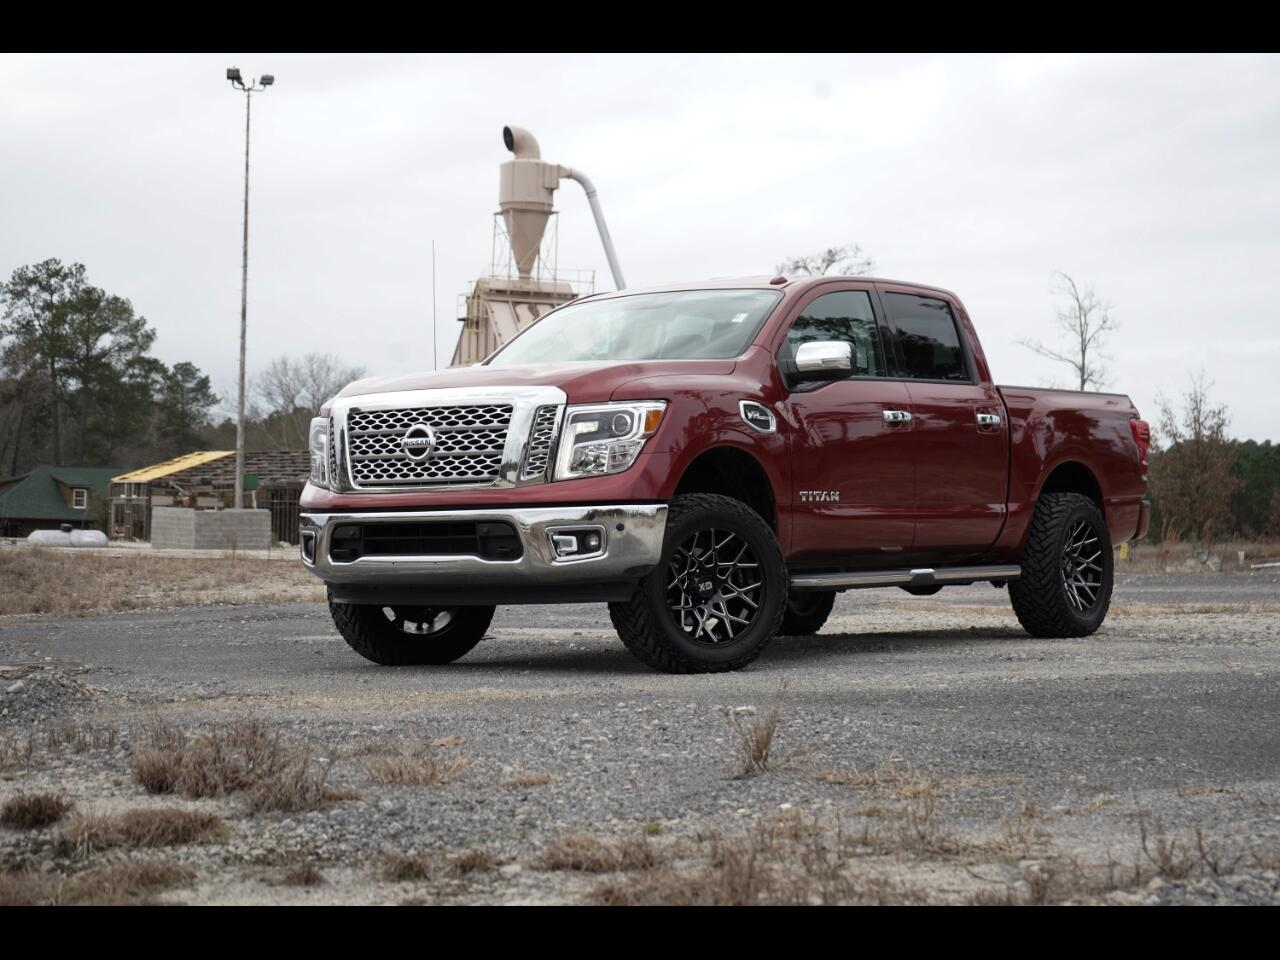 2017 Nissan Titan 4wd Crew Cab Loaded SL Lifted Hurry!